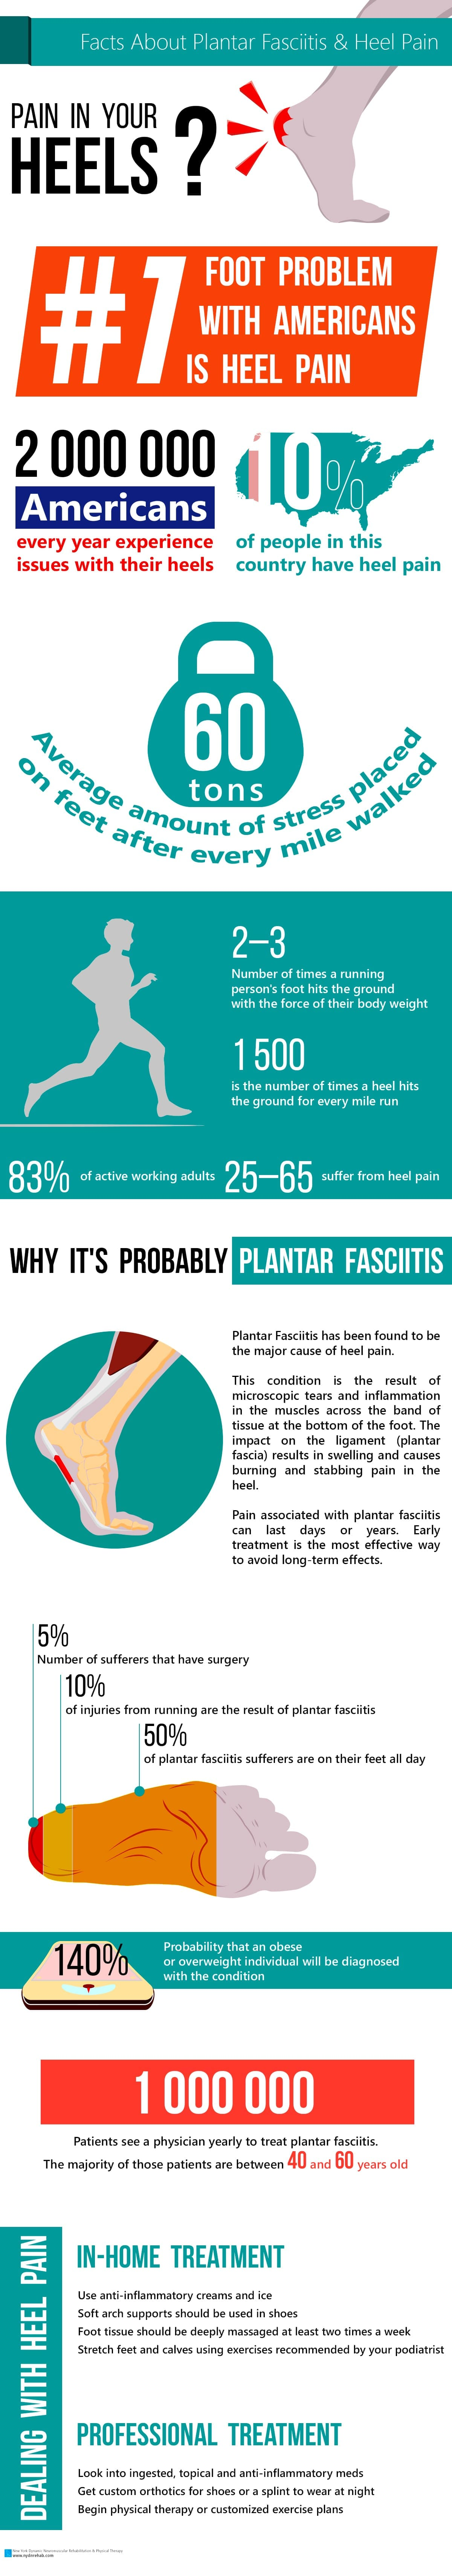 Infographic: Facts About Plantar Fasciitis & Heel Pain Blog  Plantar Fasciitis